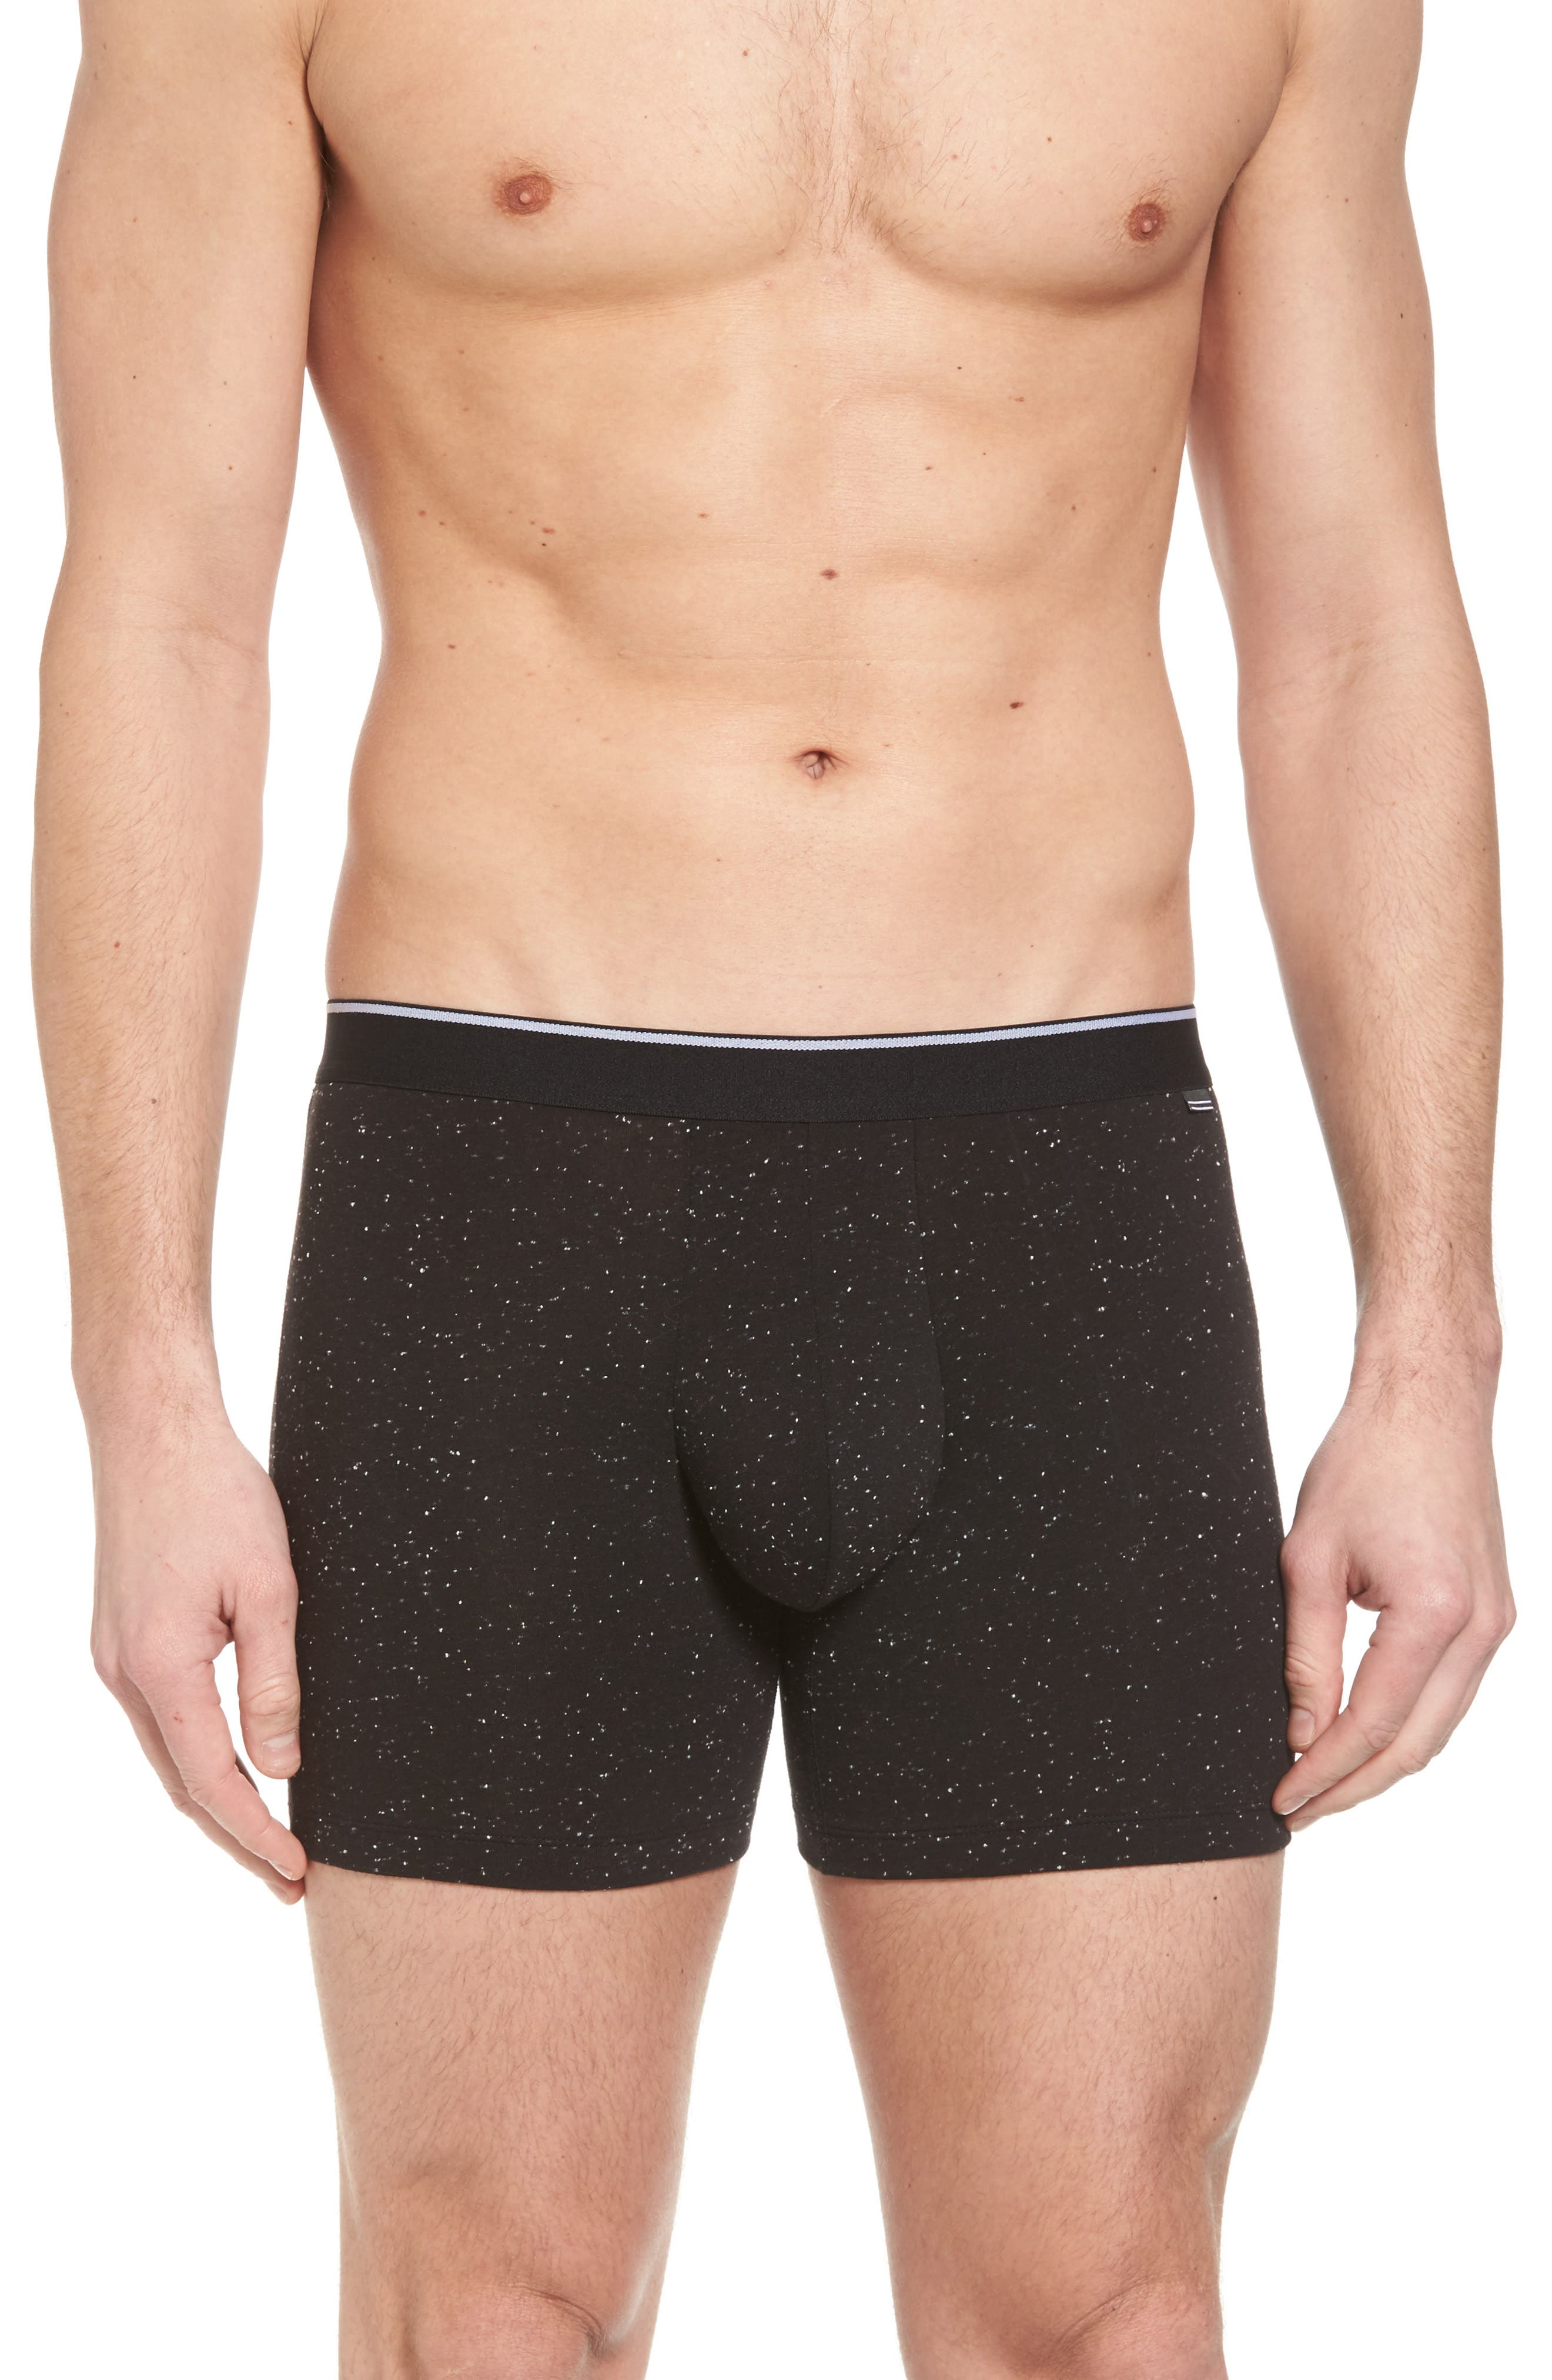 Nepped Boxer Briefs,                         Main,                         color, Black- White Nepps